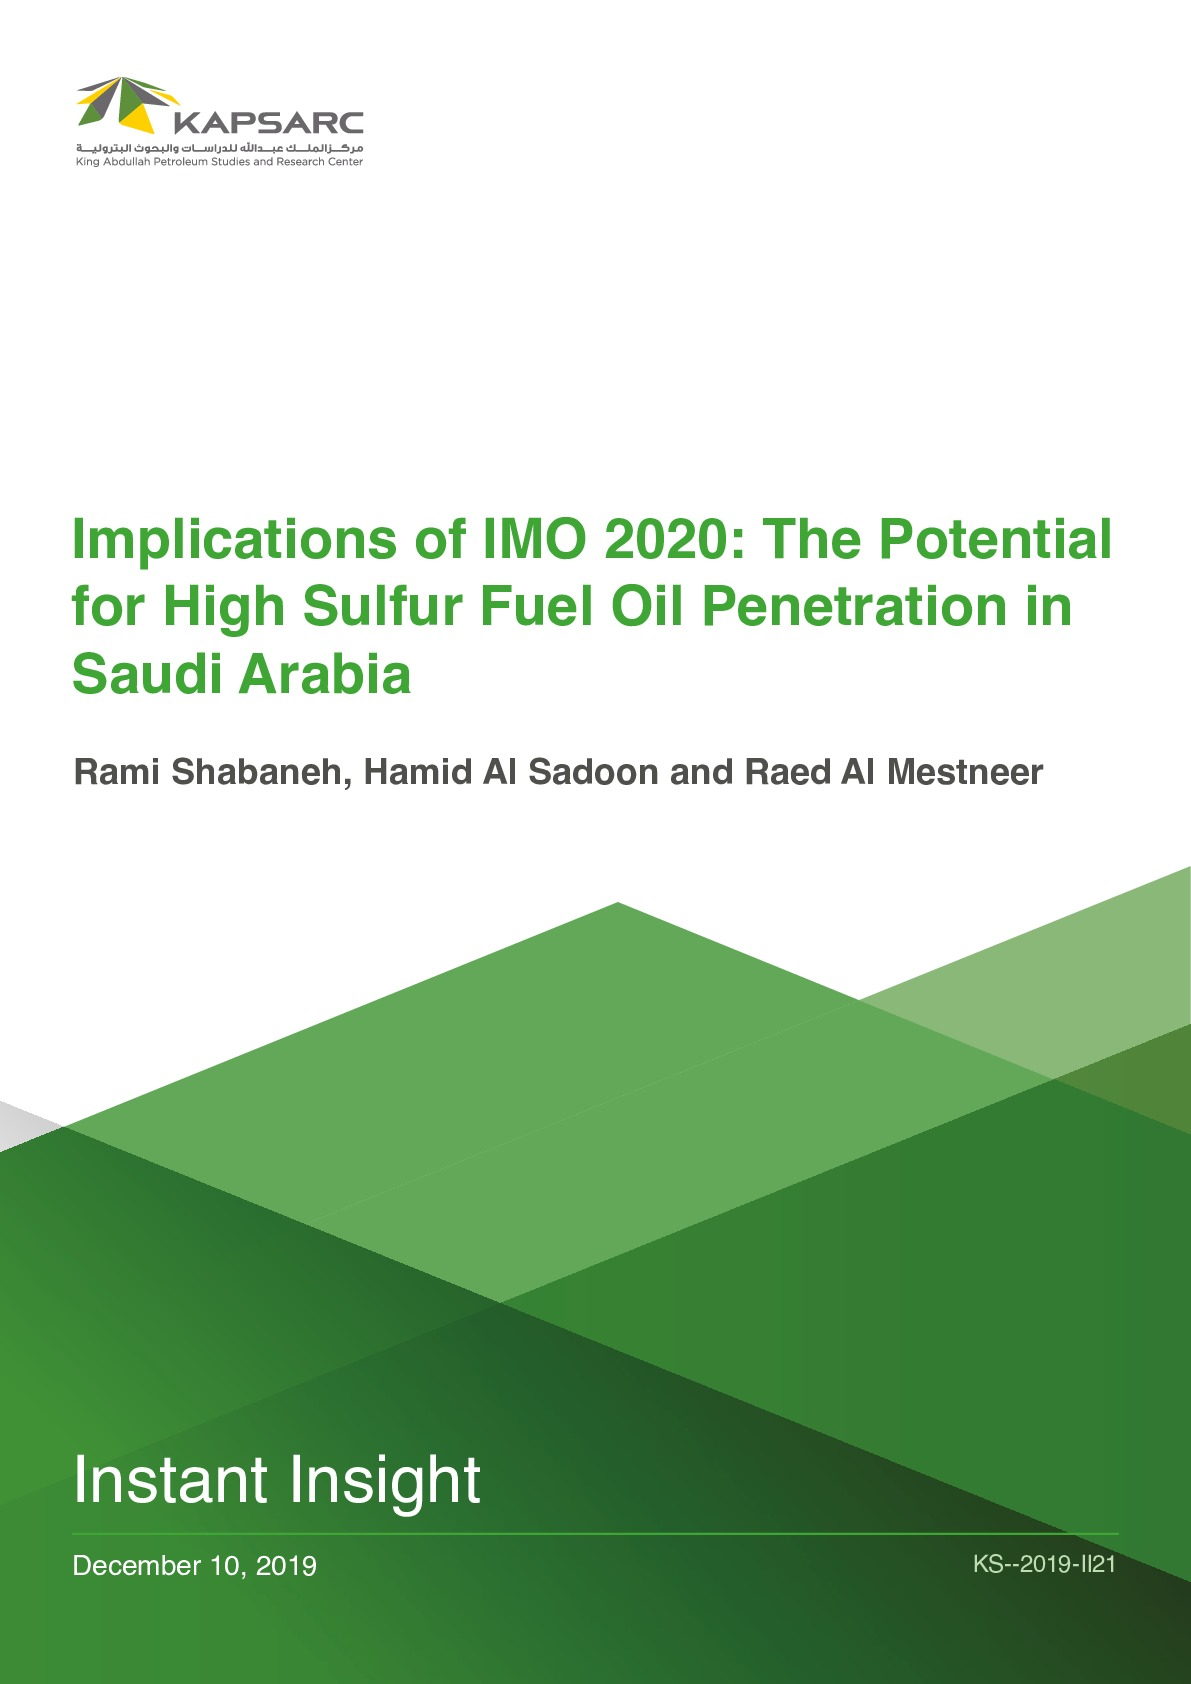 Implications of IMO 2020: The Potential for High Sulfur Fuel Oil Penetration in Saudi Arabia